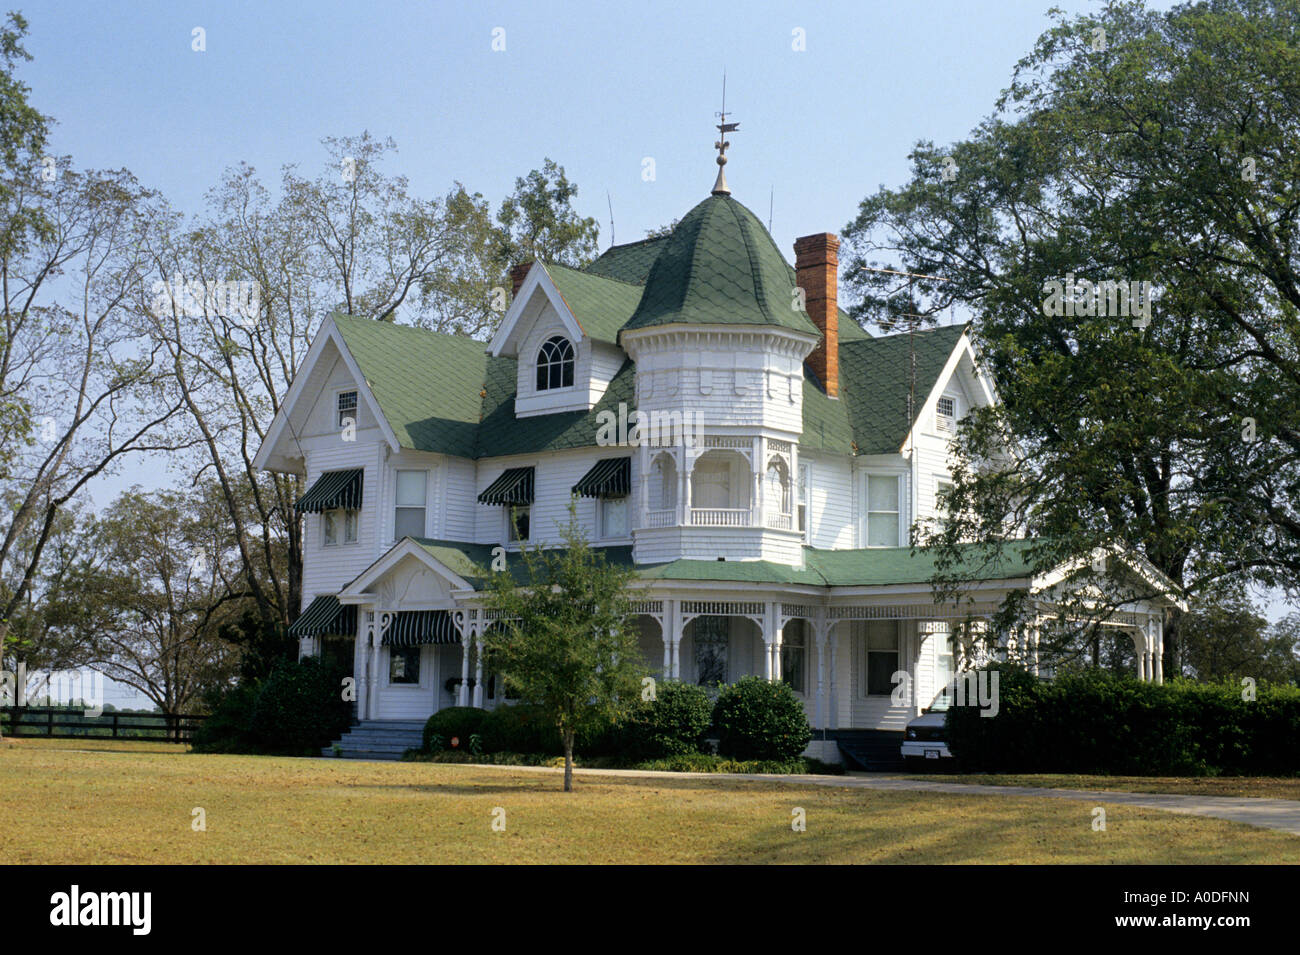 Victorian house in Iowa - Stock Image